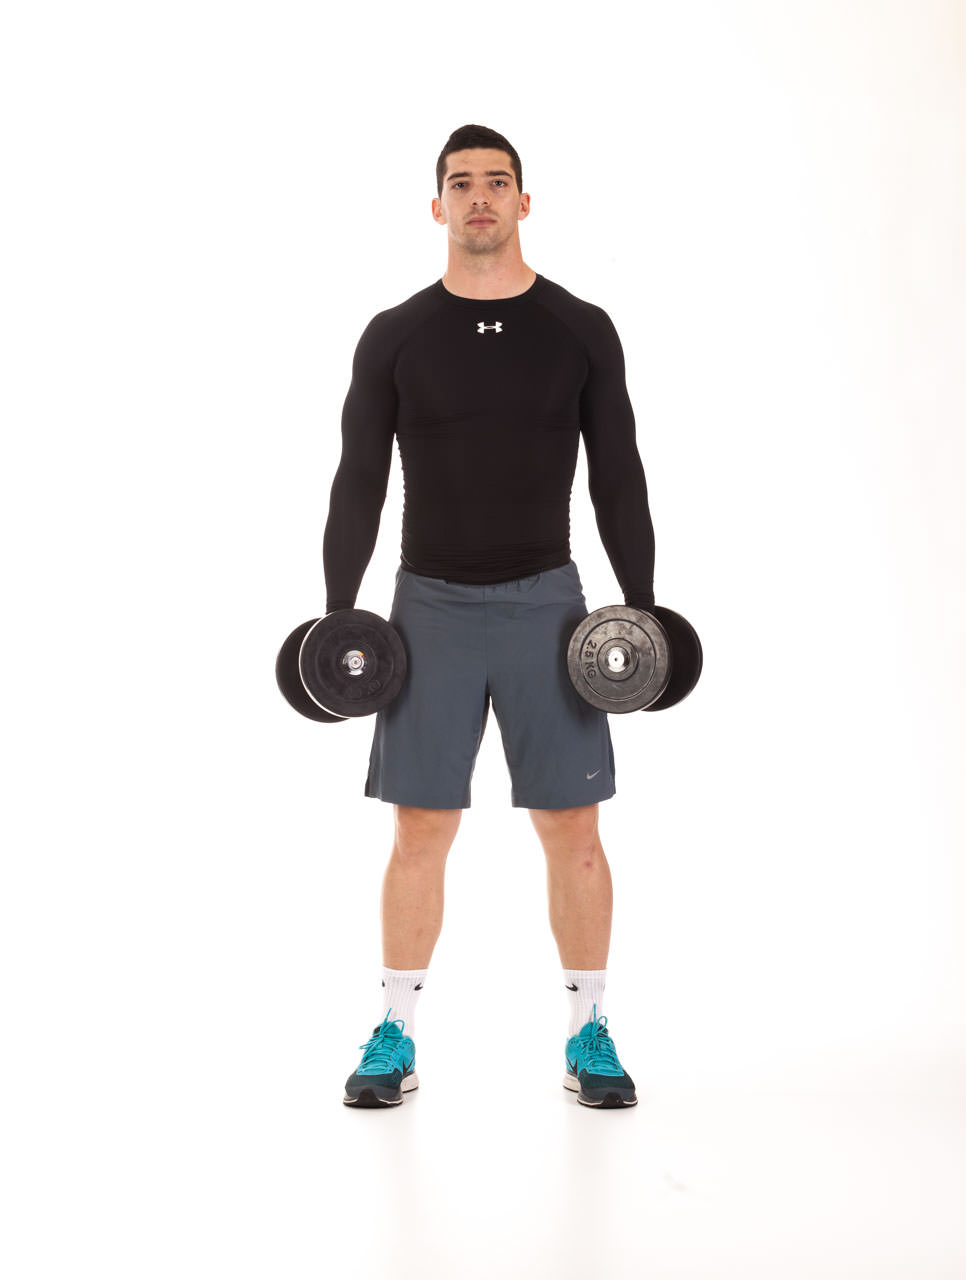 Two-Dumbbell Lateral Raise frame #1